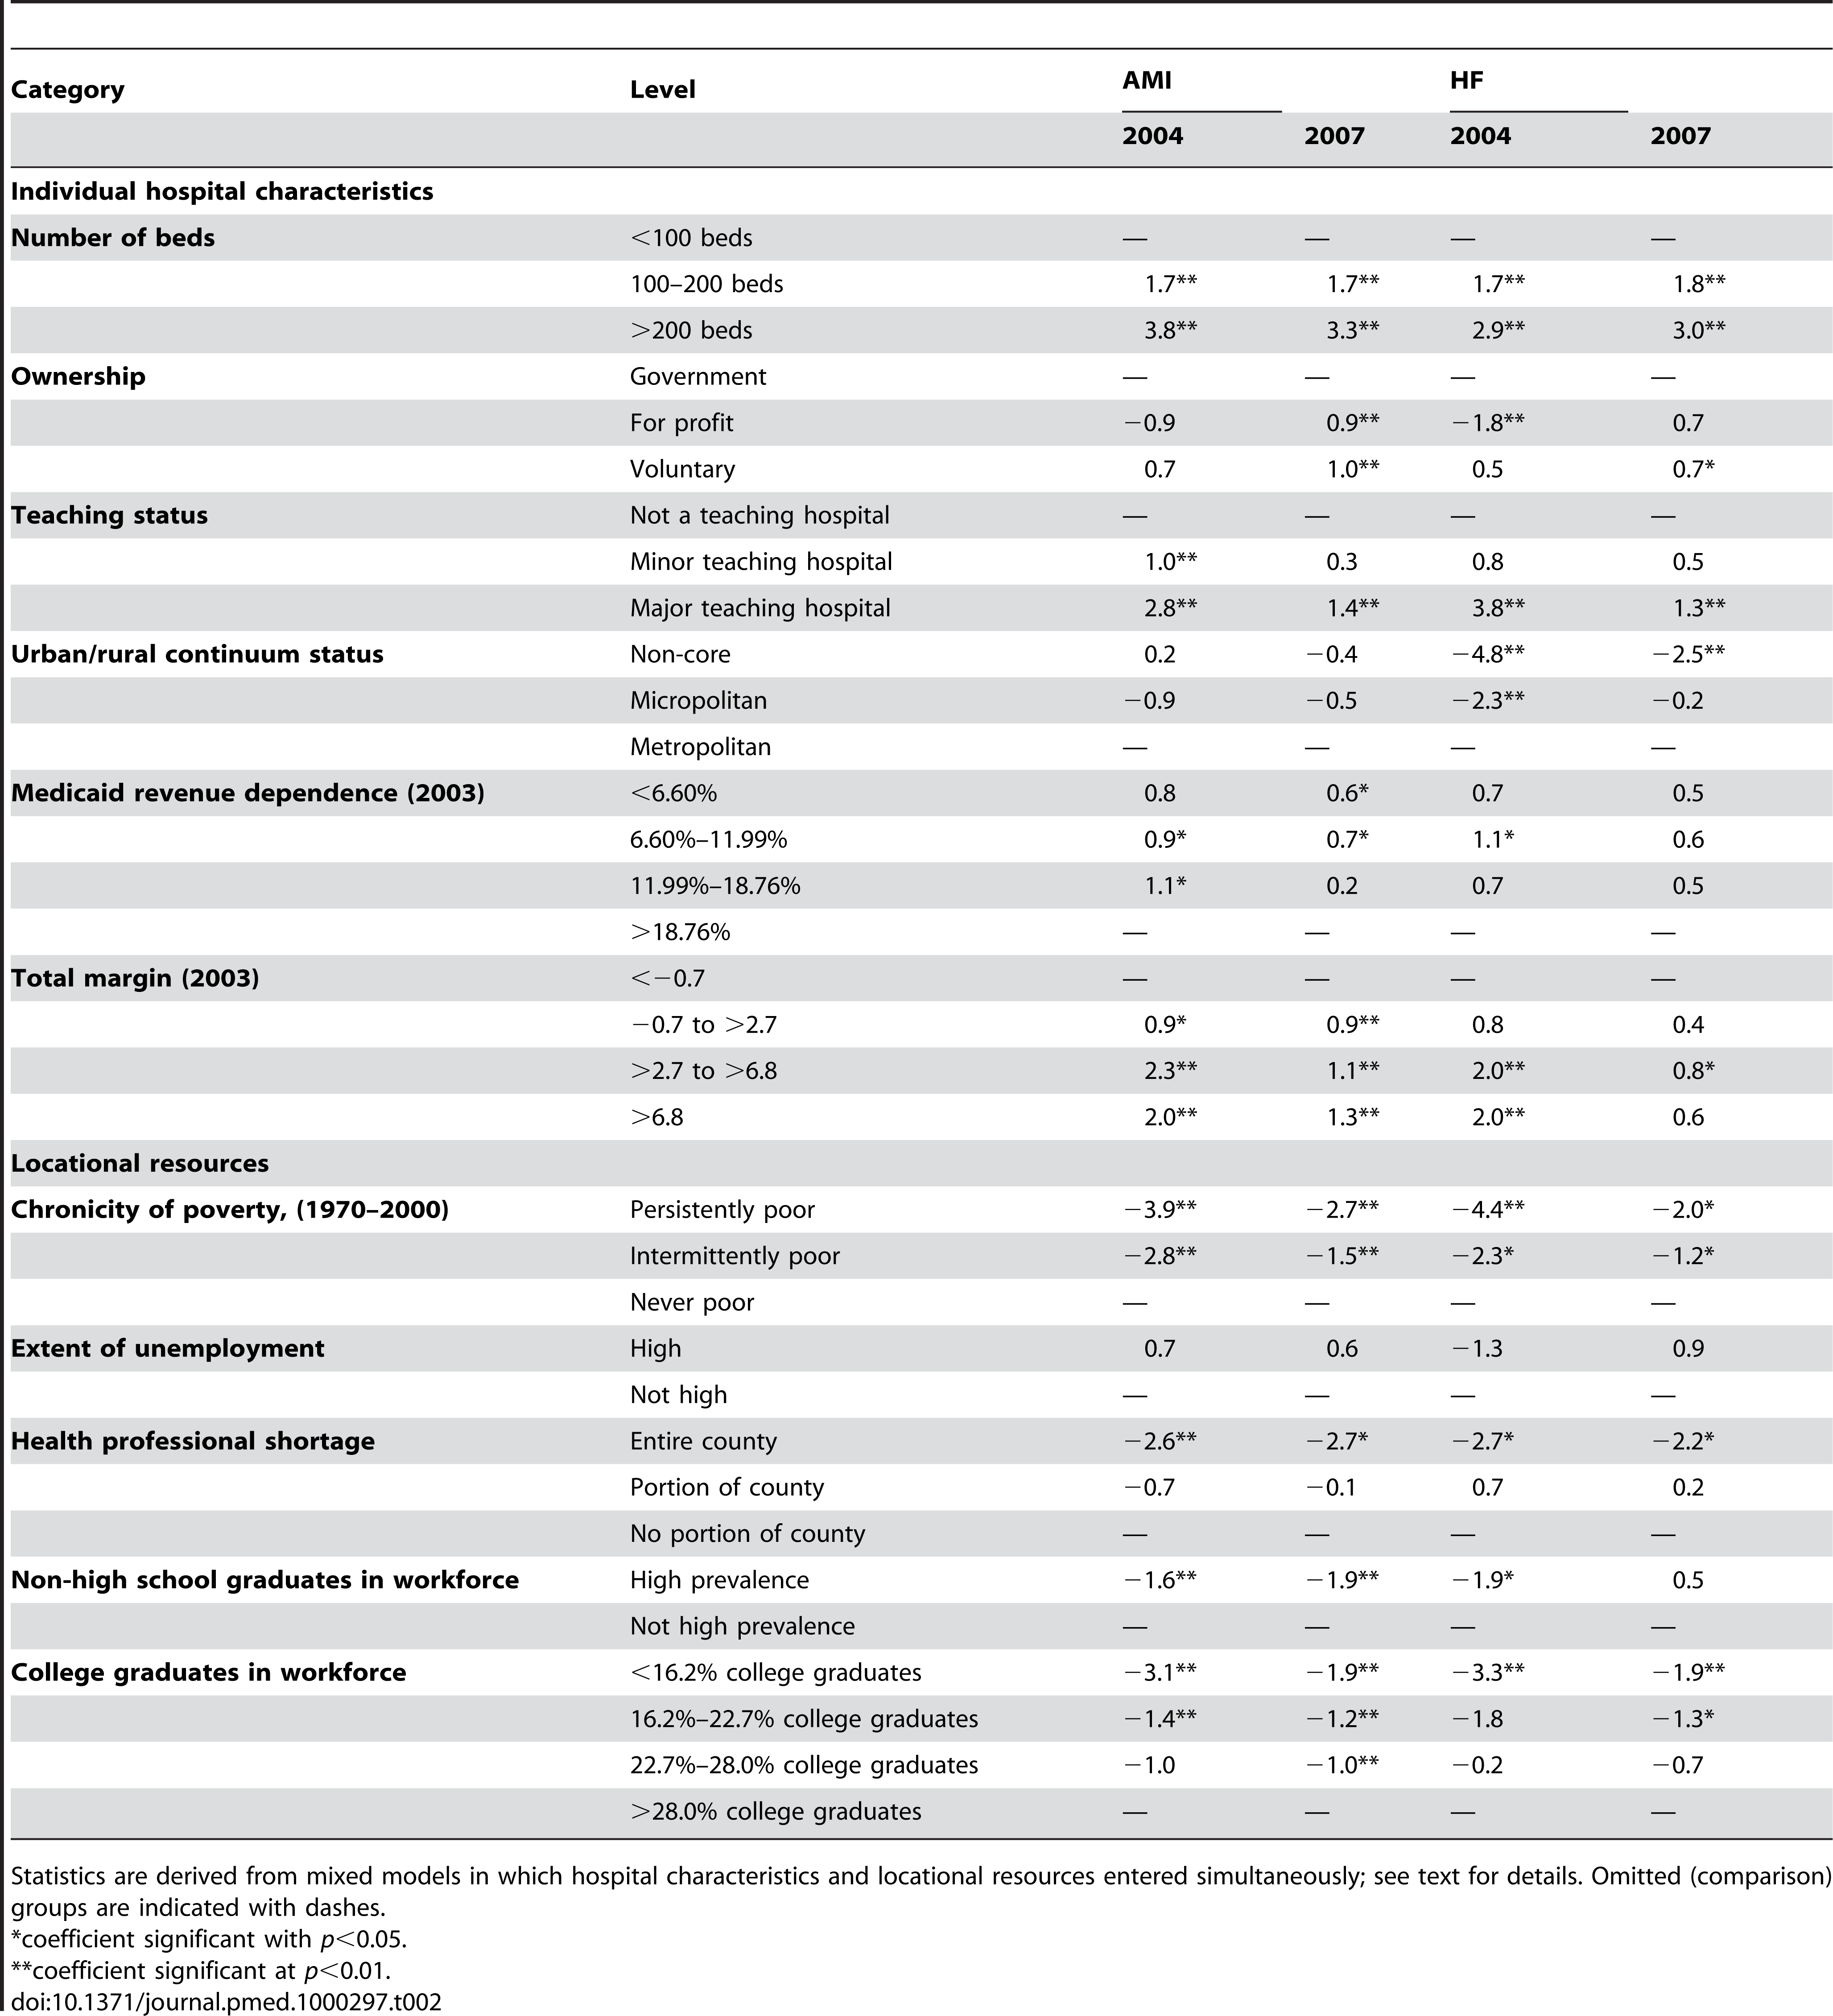 Independent effects of individual characteristics and locational resource levels on hospital composite performance scores for AMI and HF, 2004 and 2007.